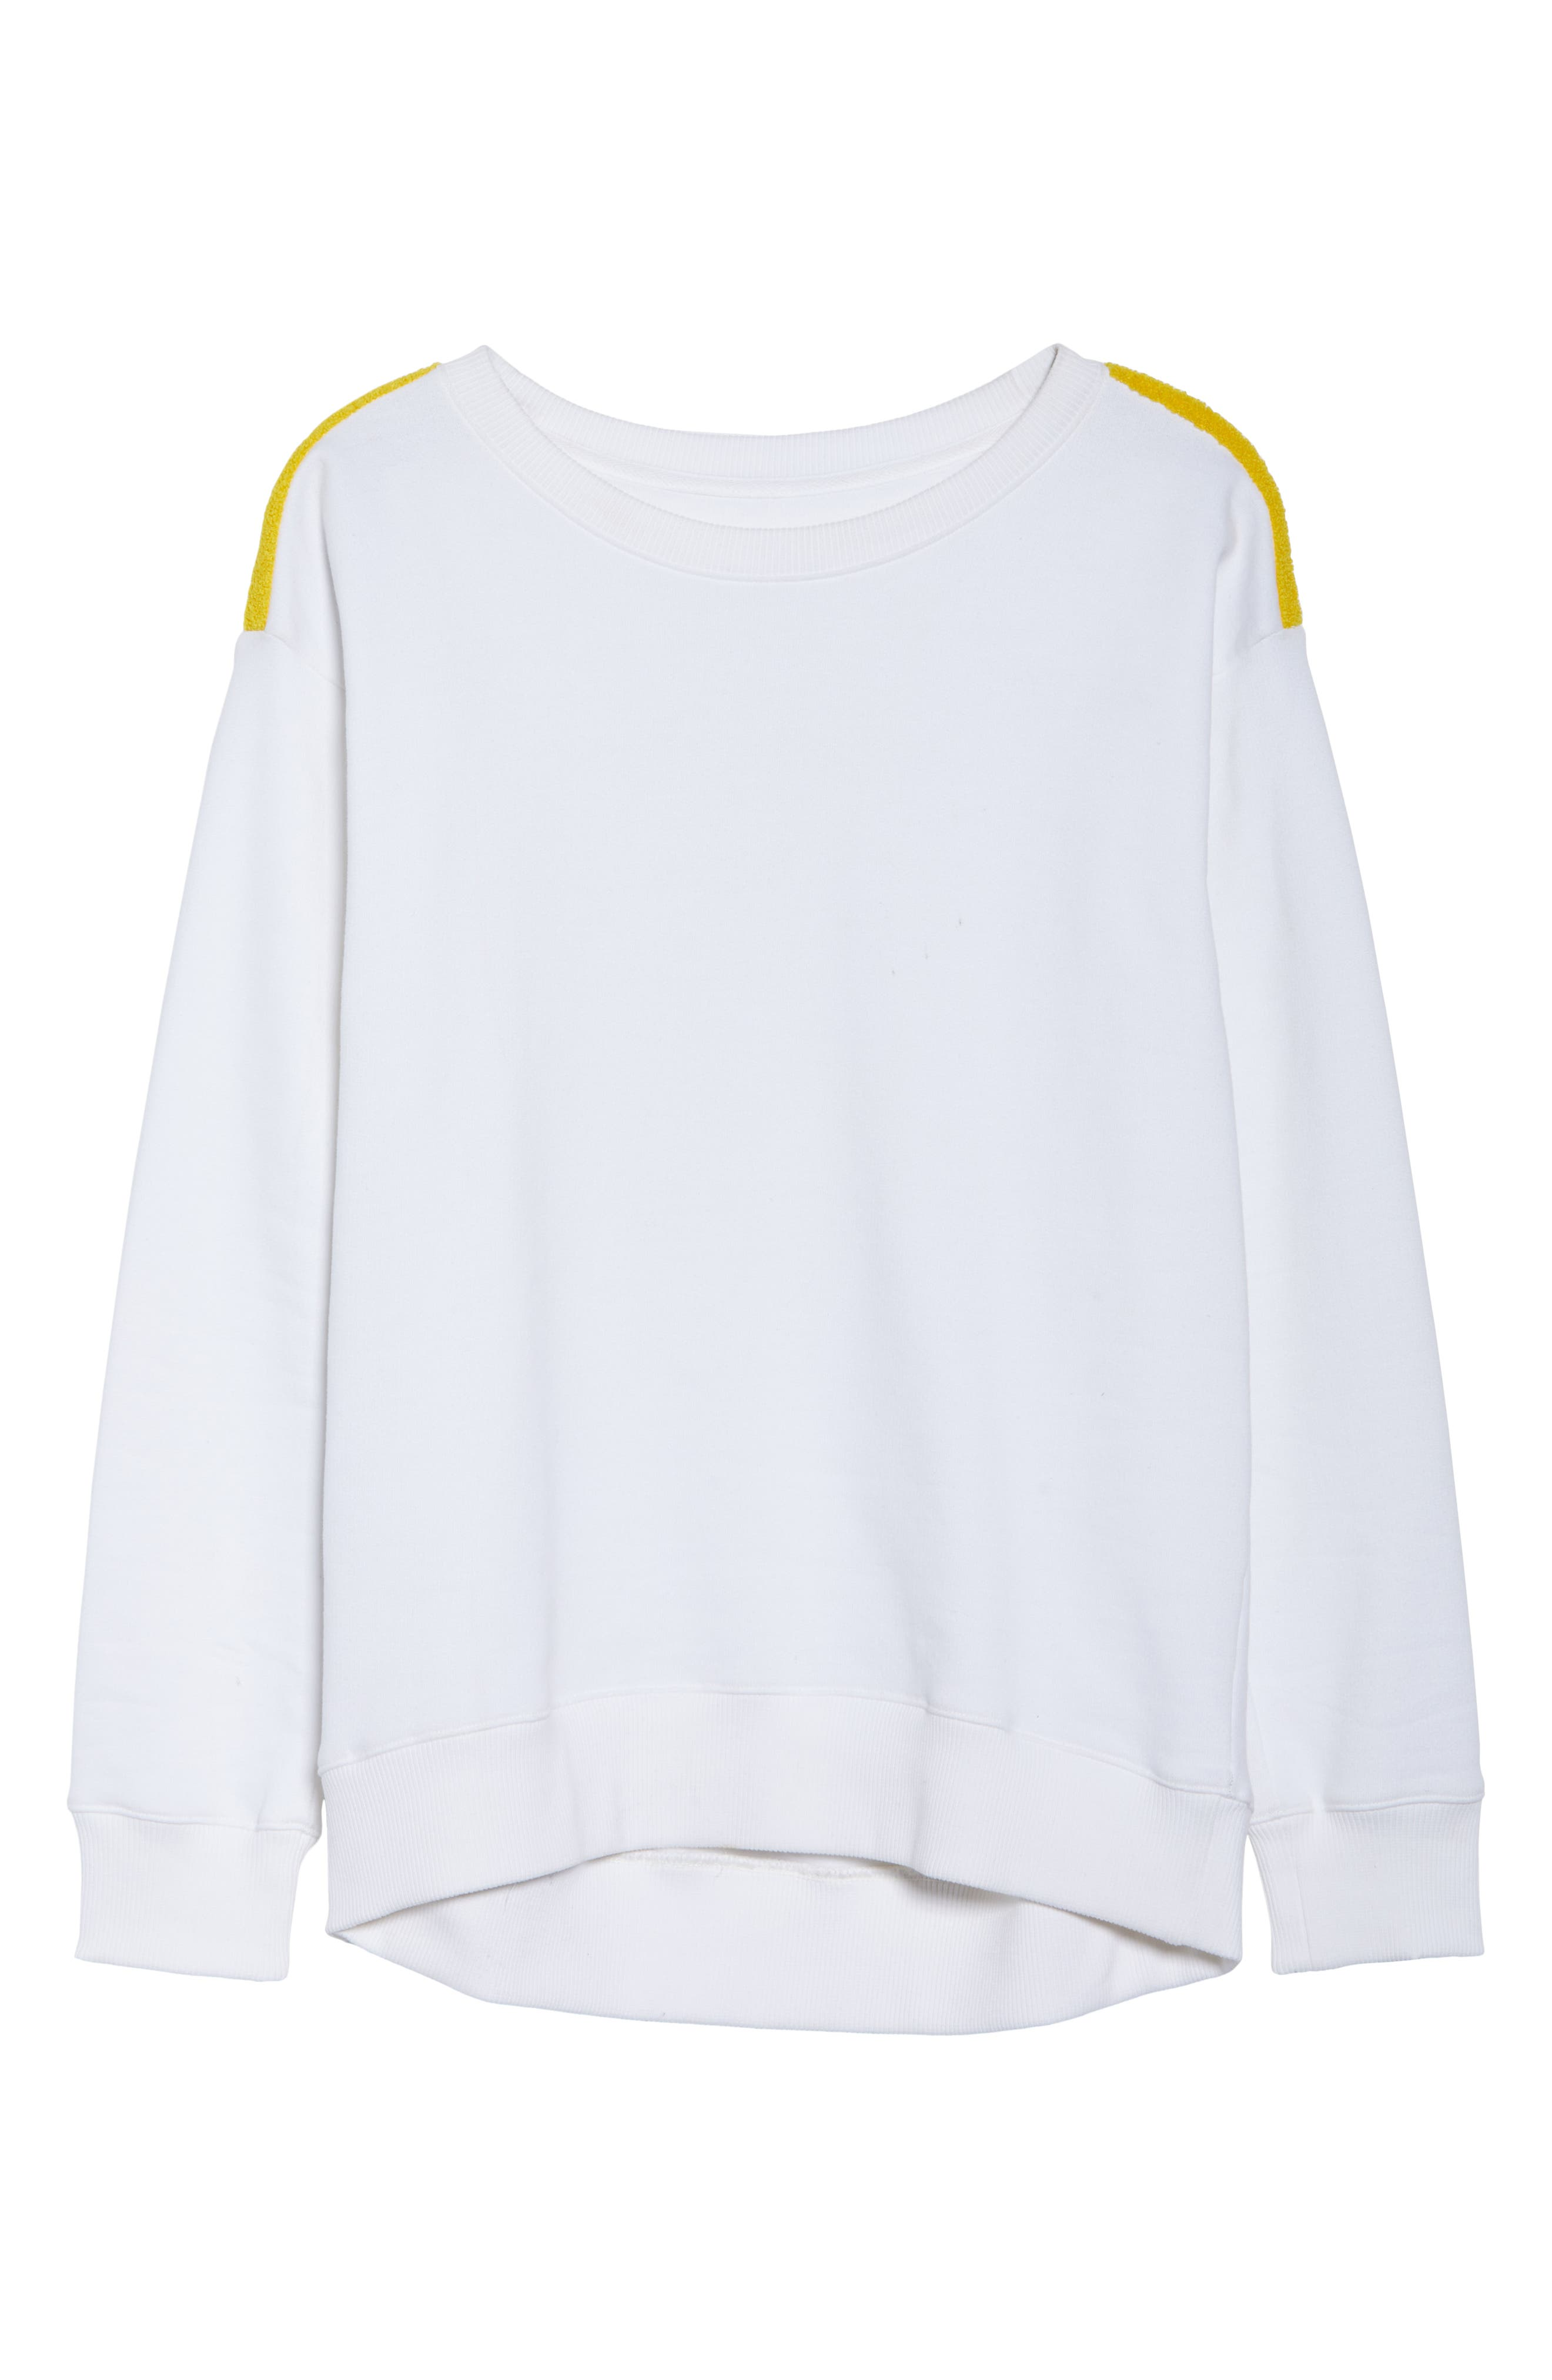 BoomBoom Athletica Tricolor Shoulder Sweatshirt,                             Alternate thumbnail 7, color,                             WHITE/ GREY/ YELLOW